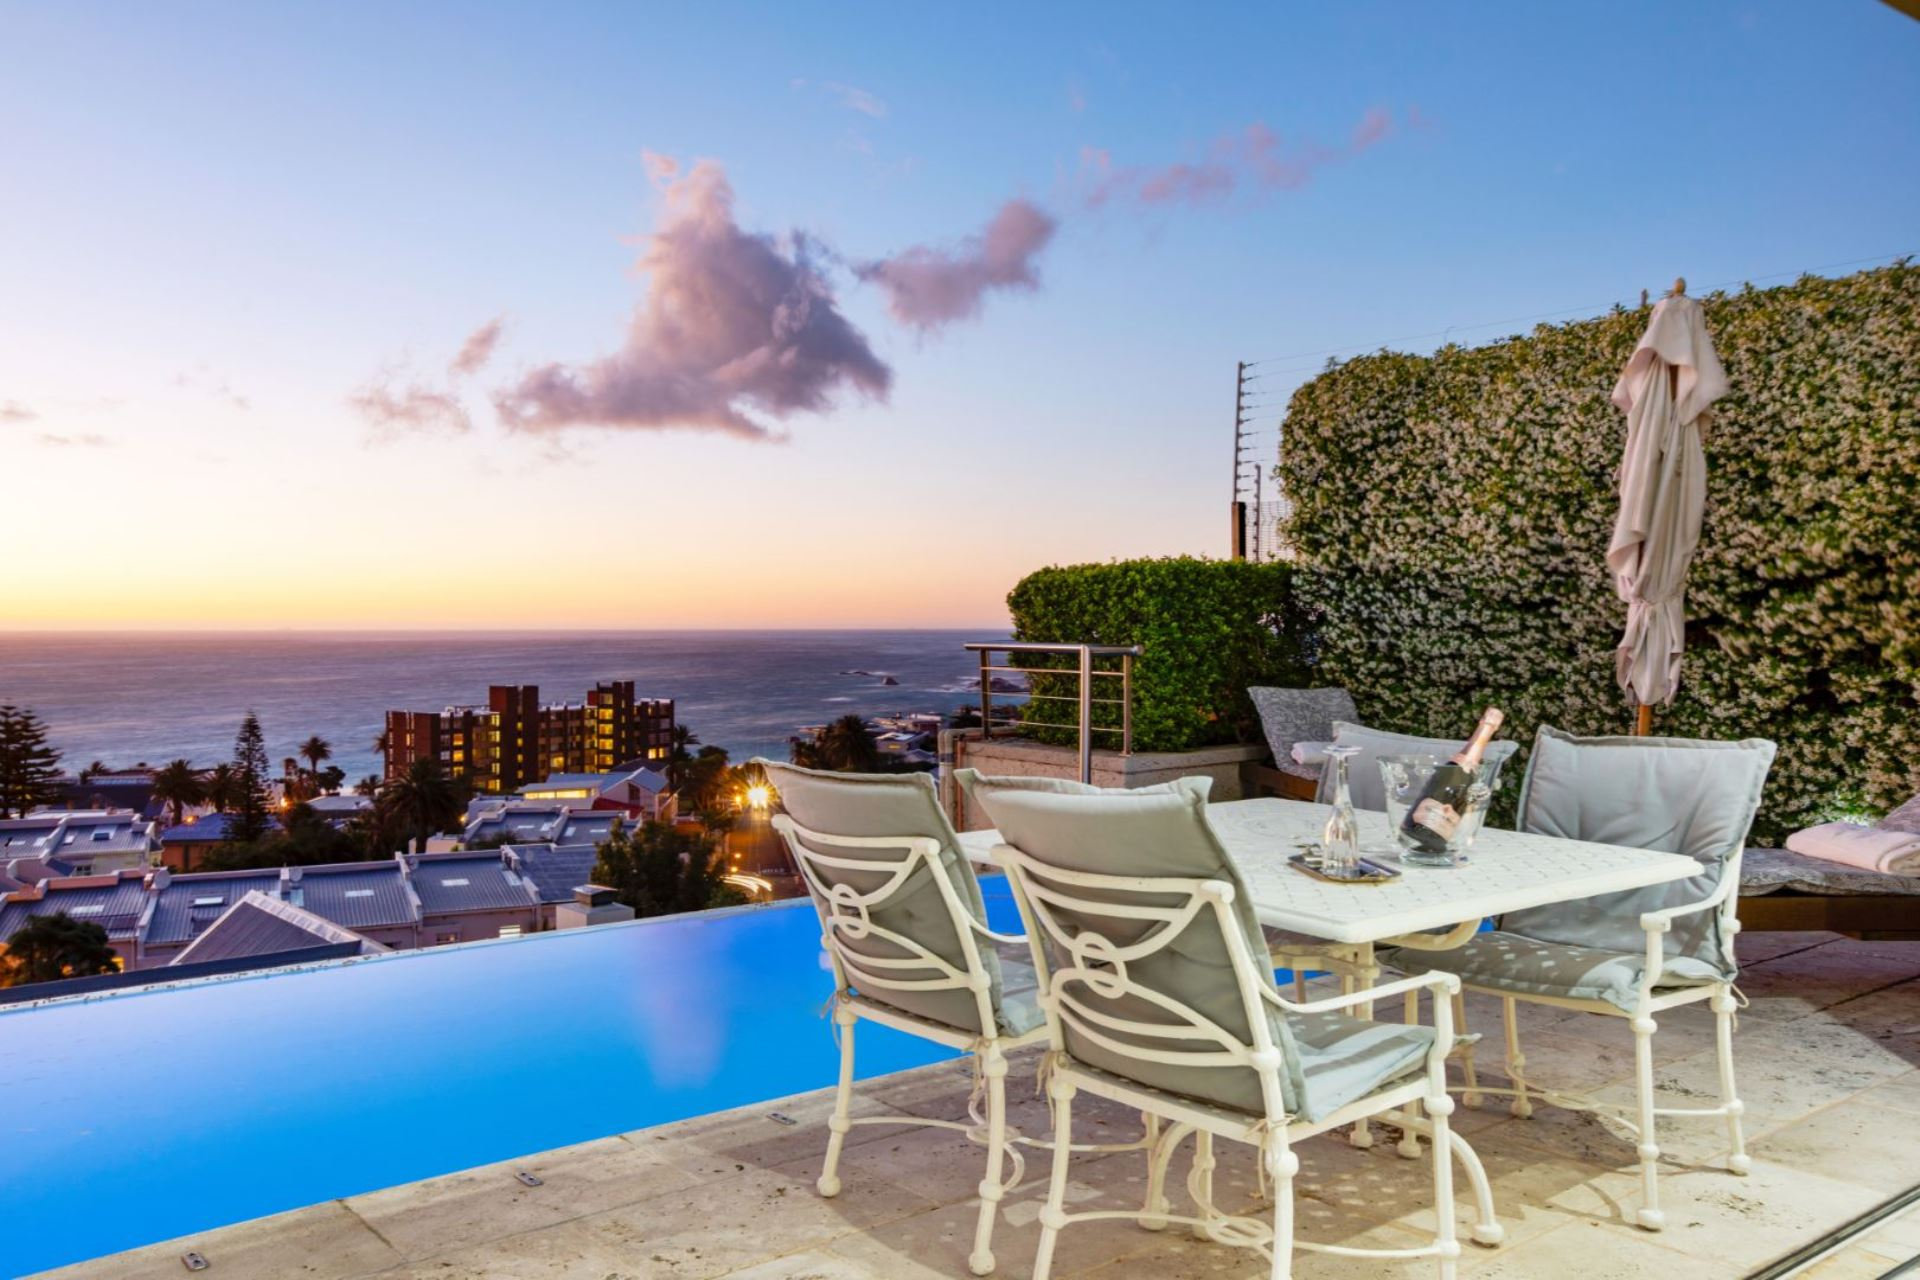 4 Bedroom House for Sale in Camps Bay